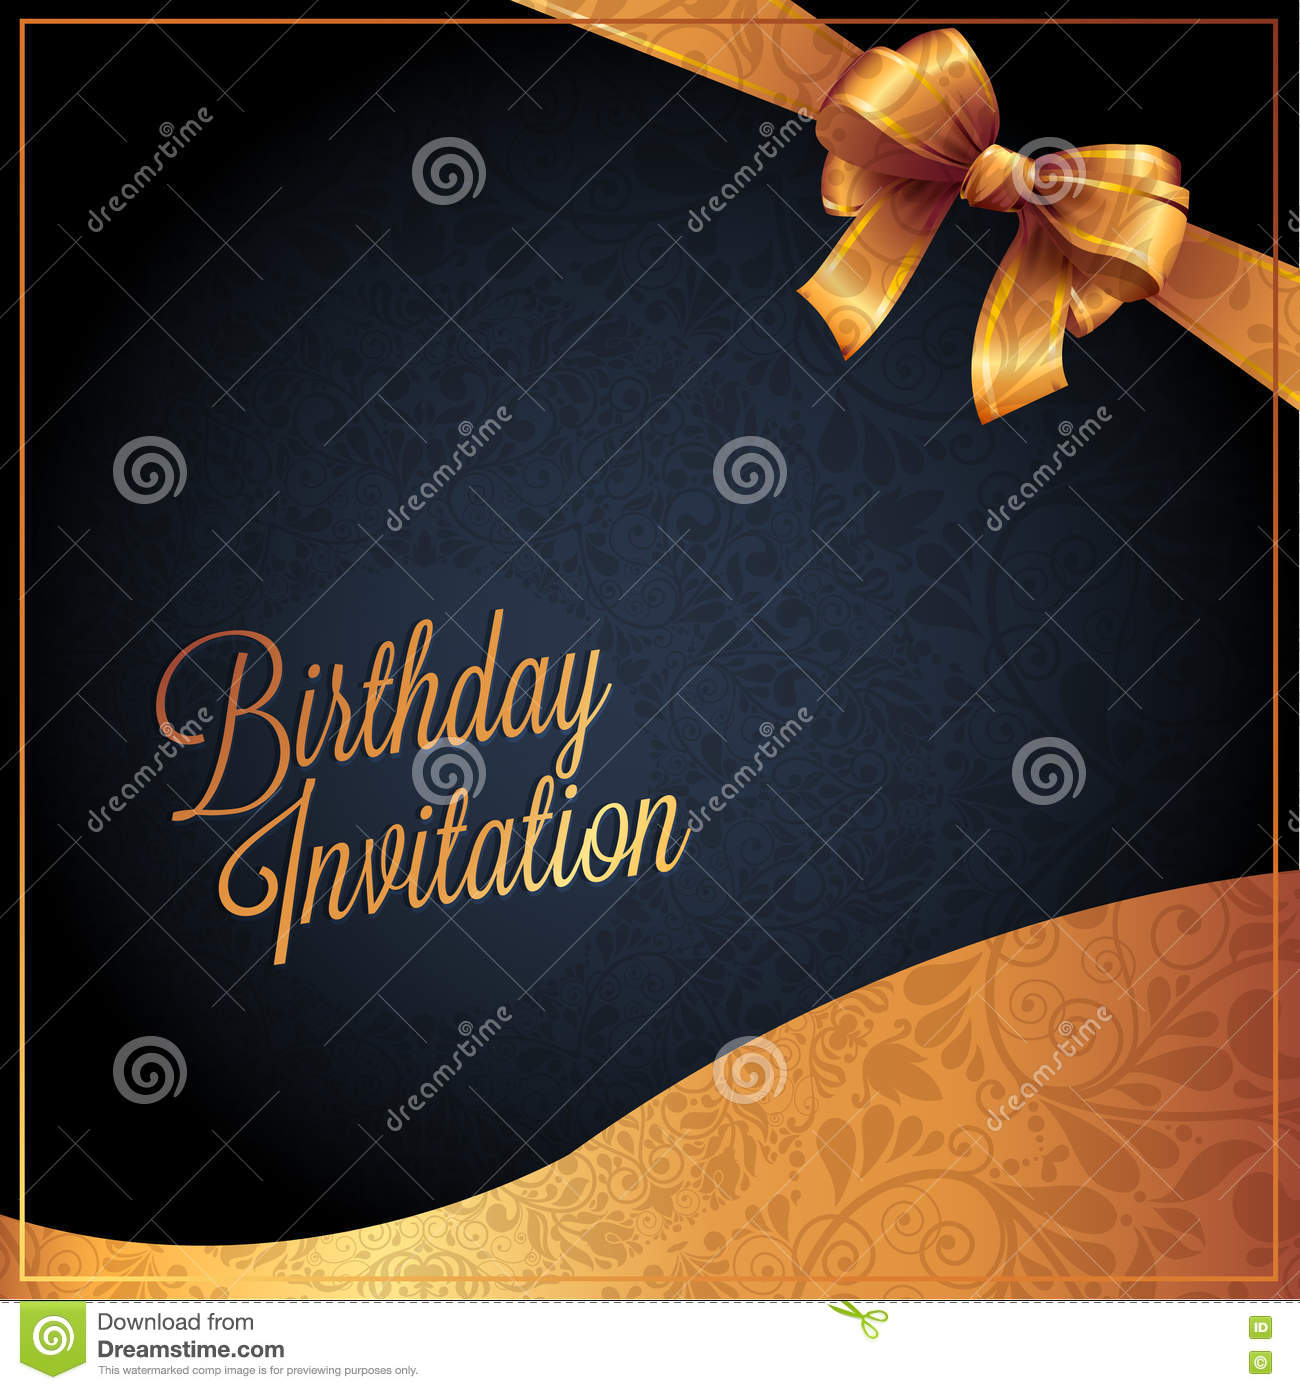 Birthday card with black background design stock vector birthday card with black background design bookmarktalkfo Images